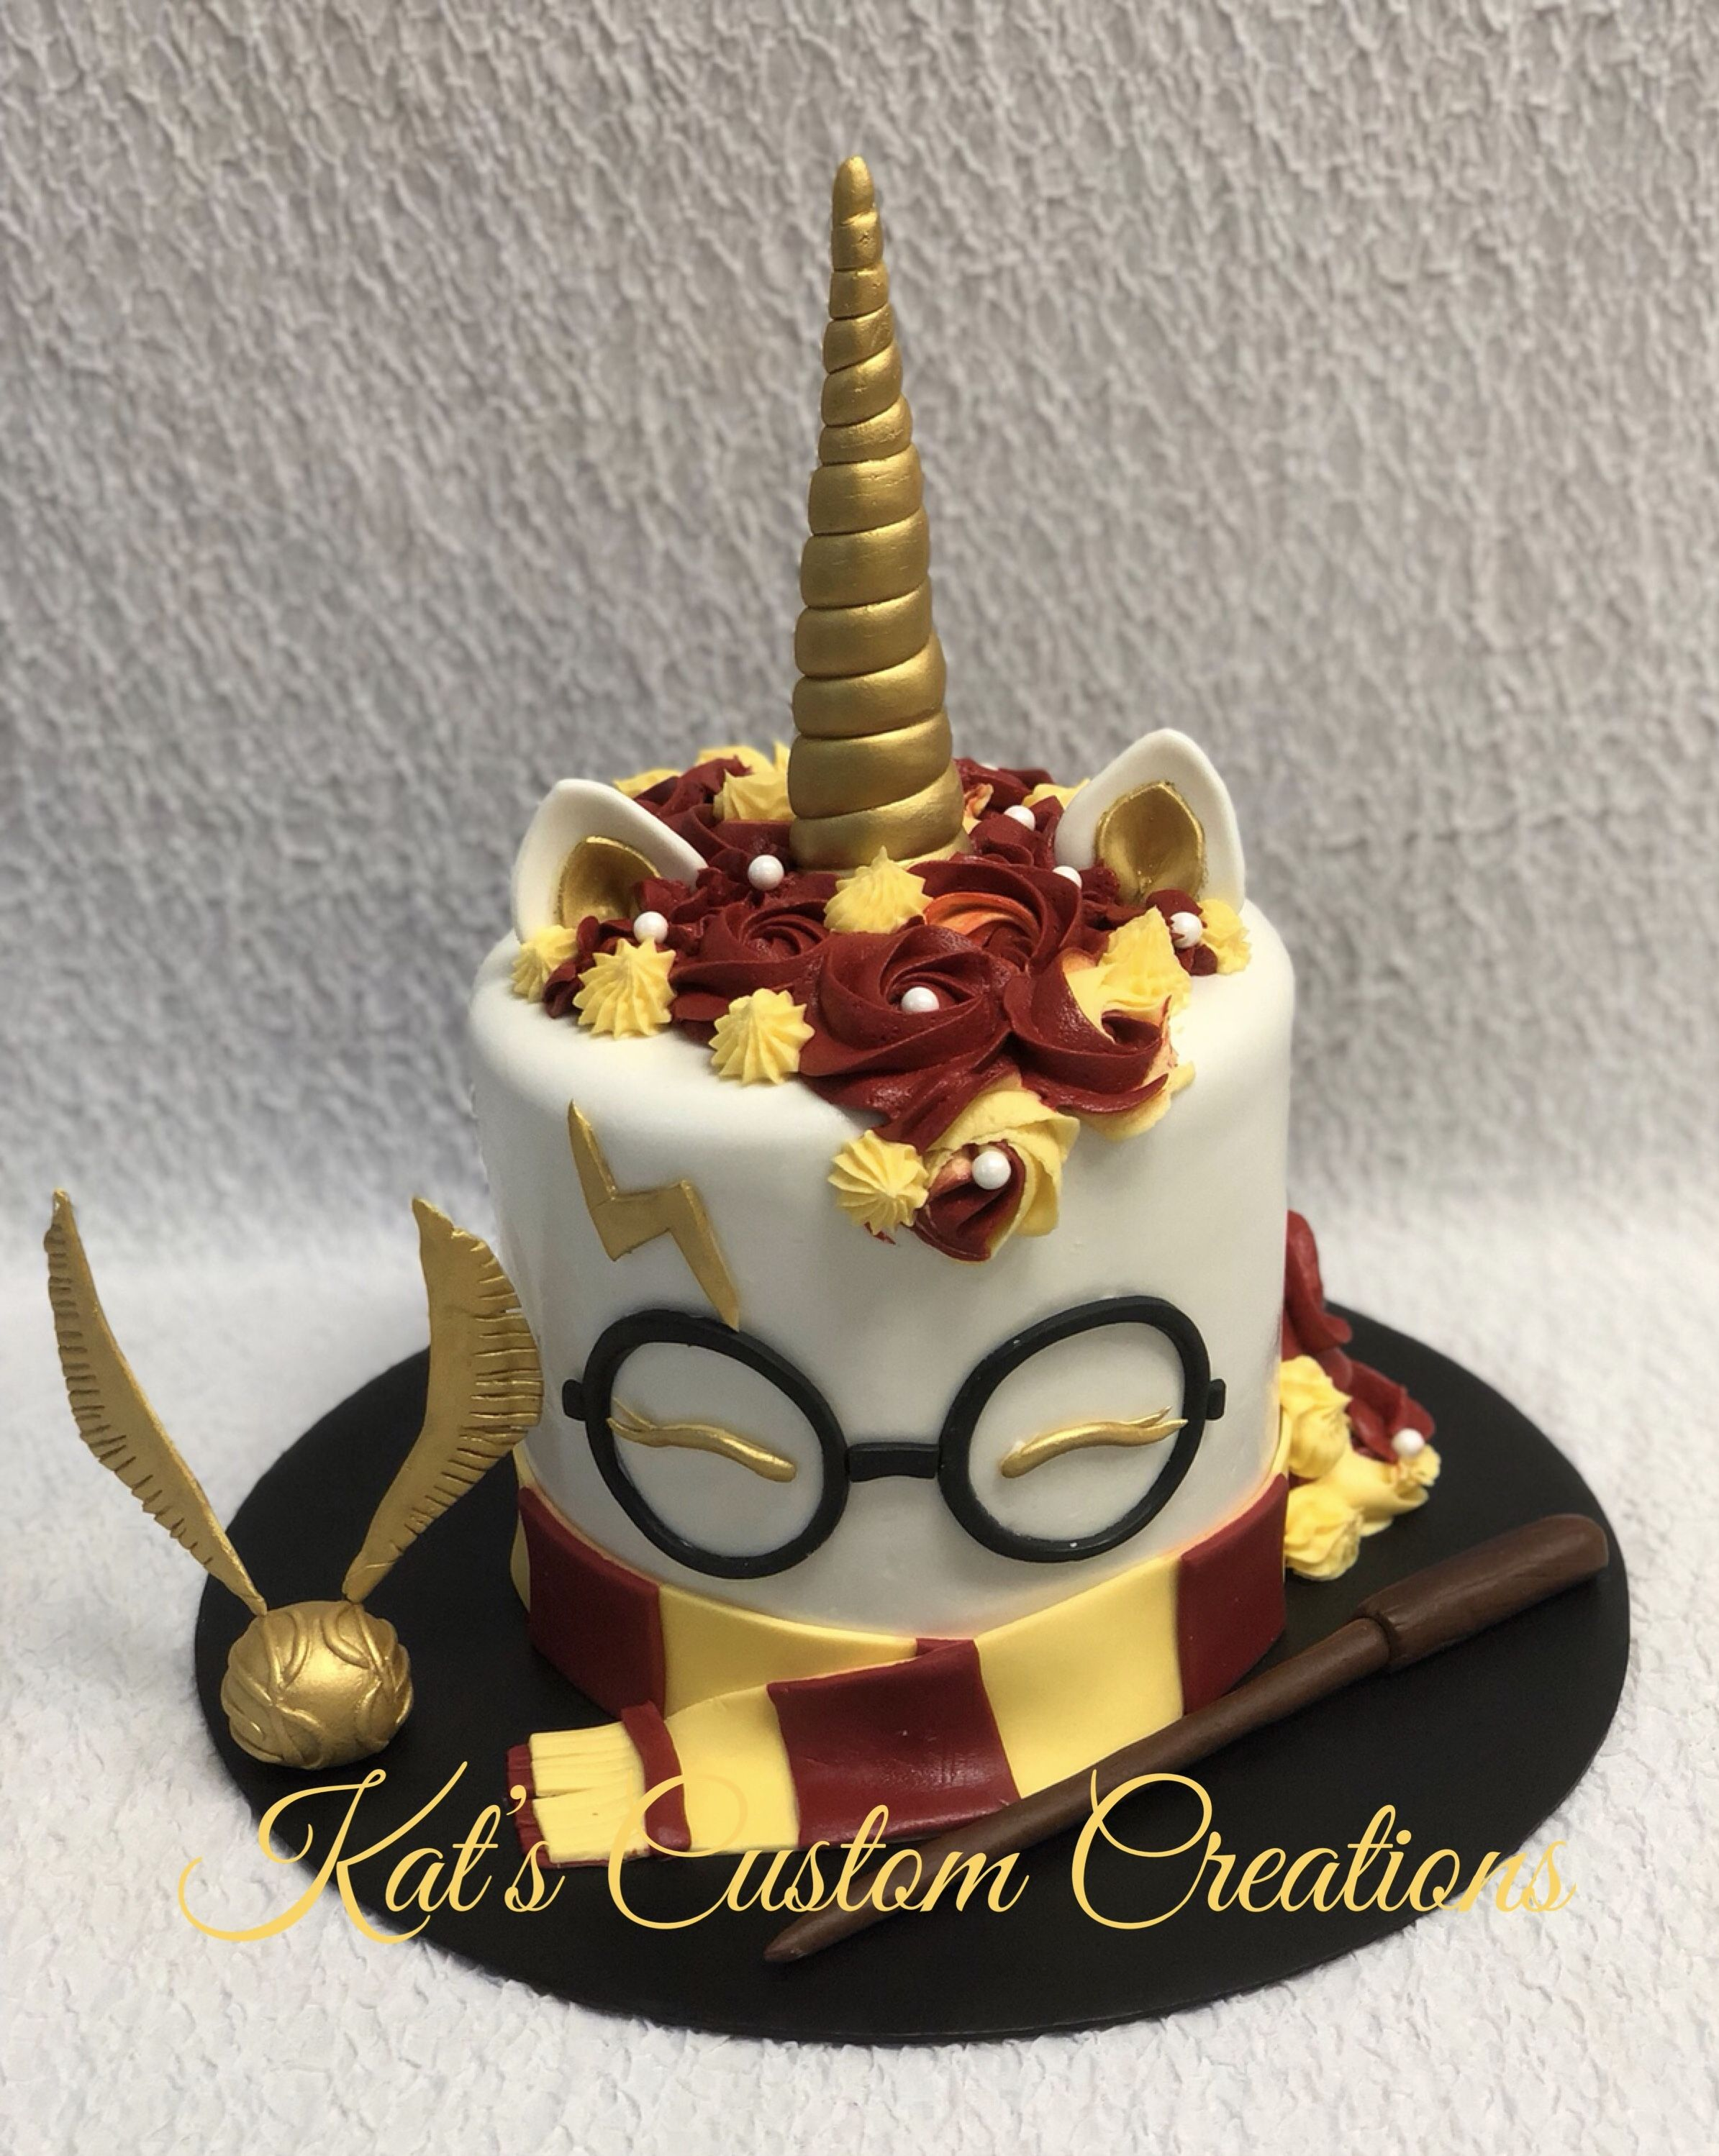 Tremendous Harry Potter Unicorn Cake Harry Potter Birthday Cake Harry Personalised Birthday Cards Paralily Jamesorg